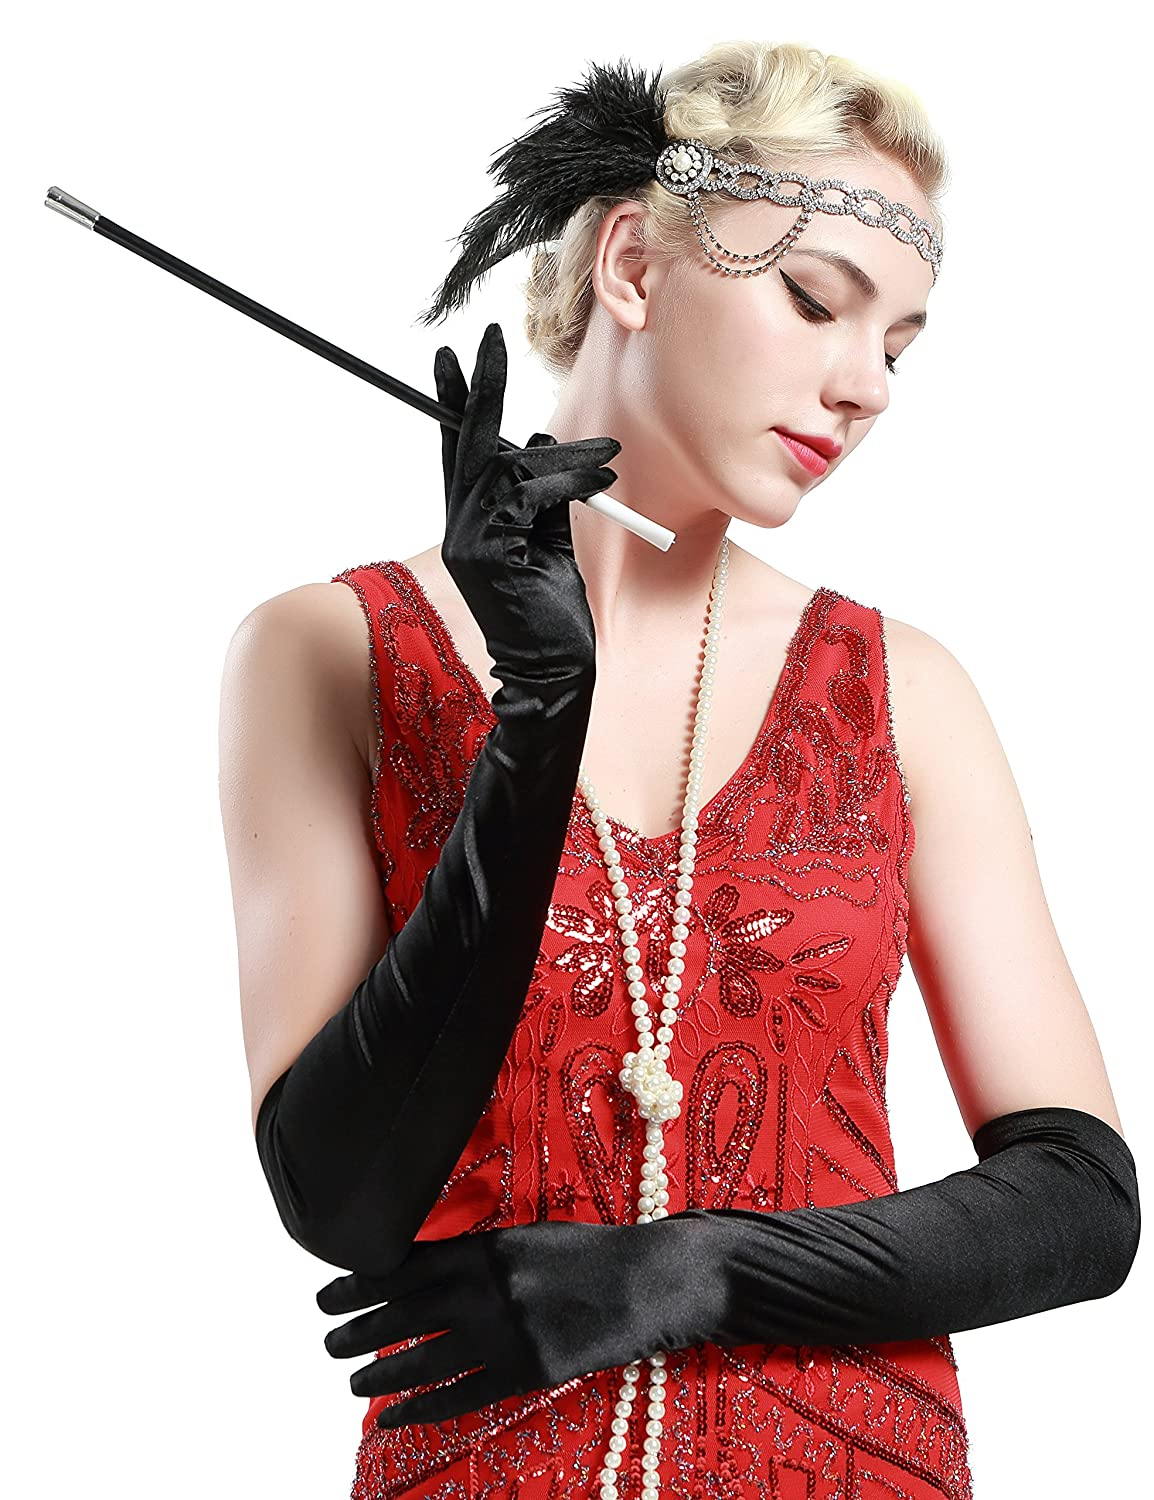 1920s Accessories | Great Gatsby Accessories Guide Plastic Cigarette Holder Costume 1920s Accessory BABEYOND  $7.99 AT vintagedancer.com